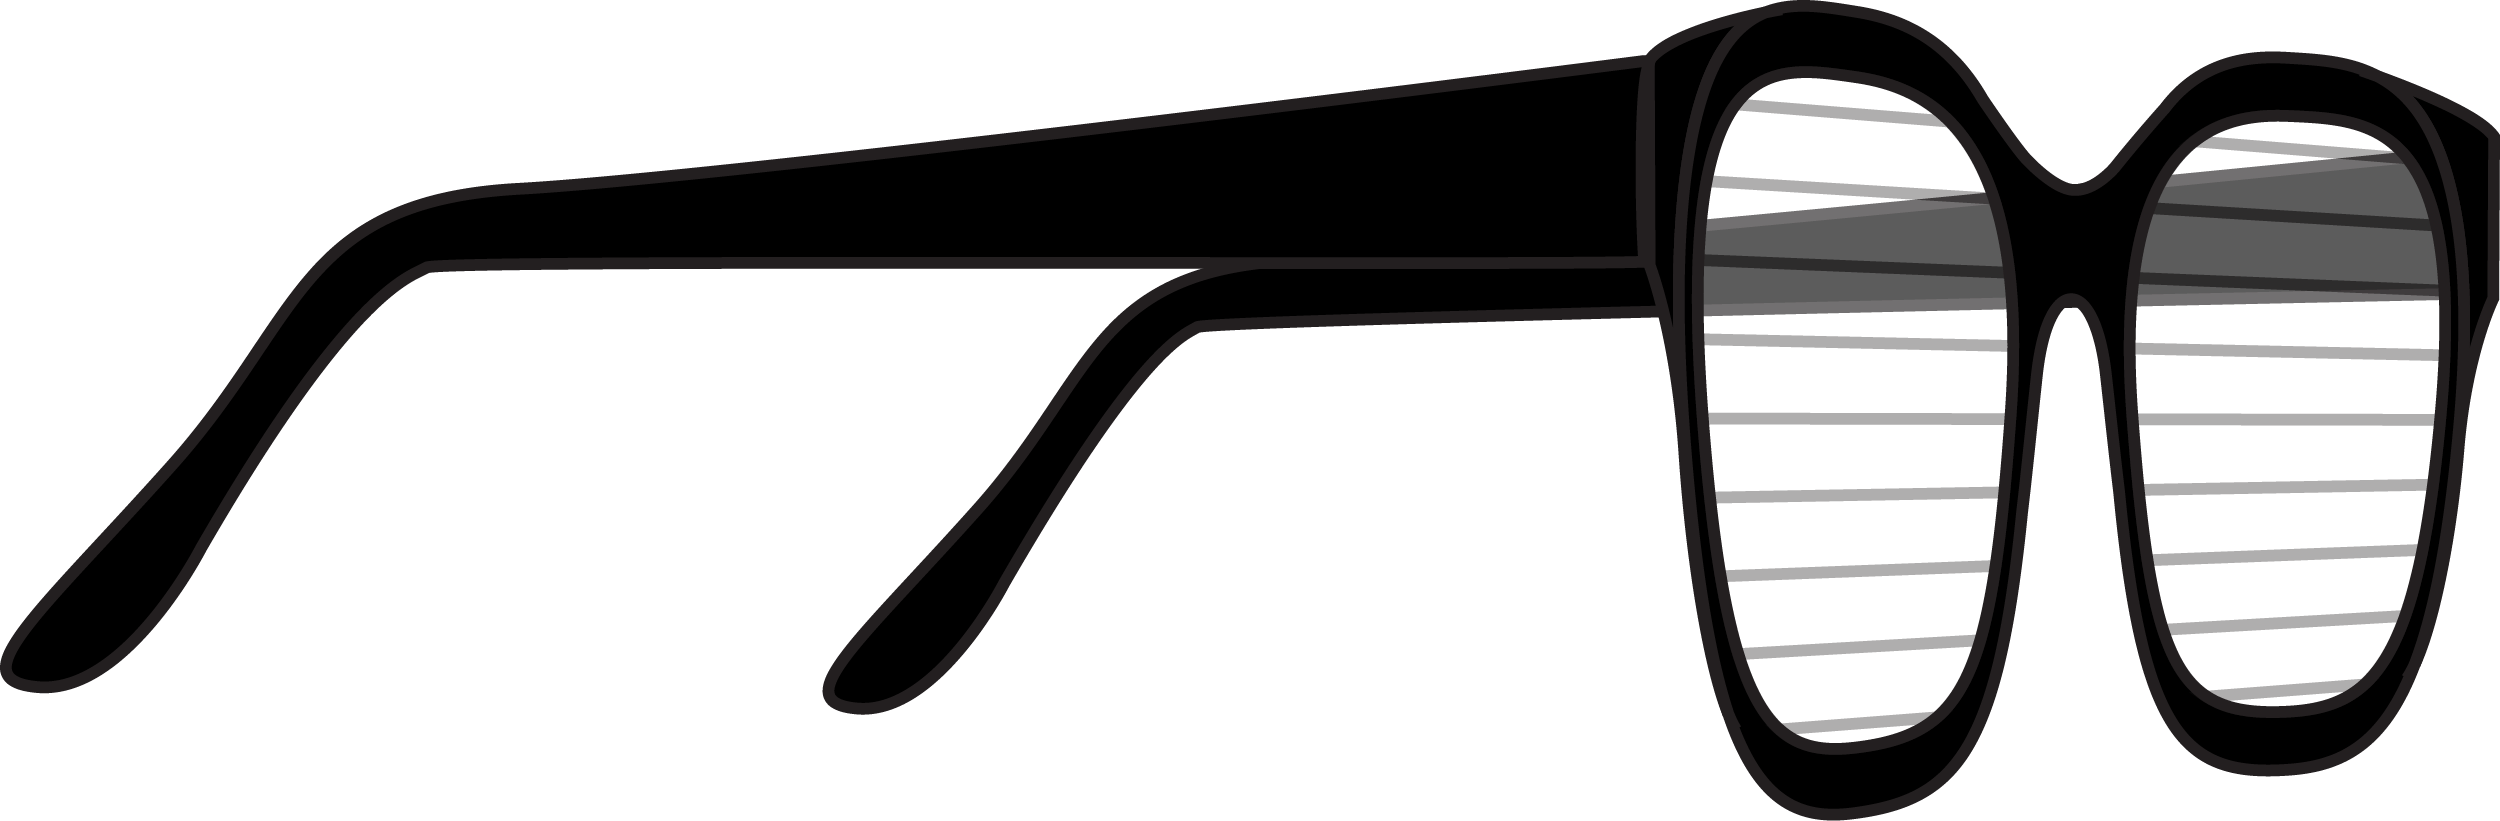 Glasses PNG Claipart